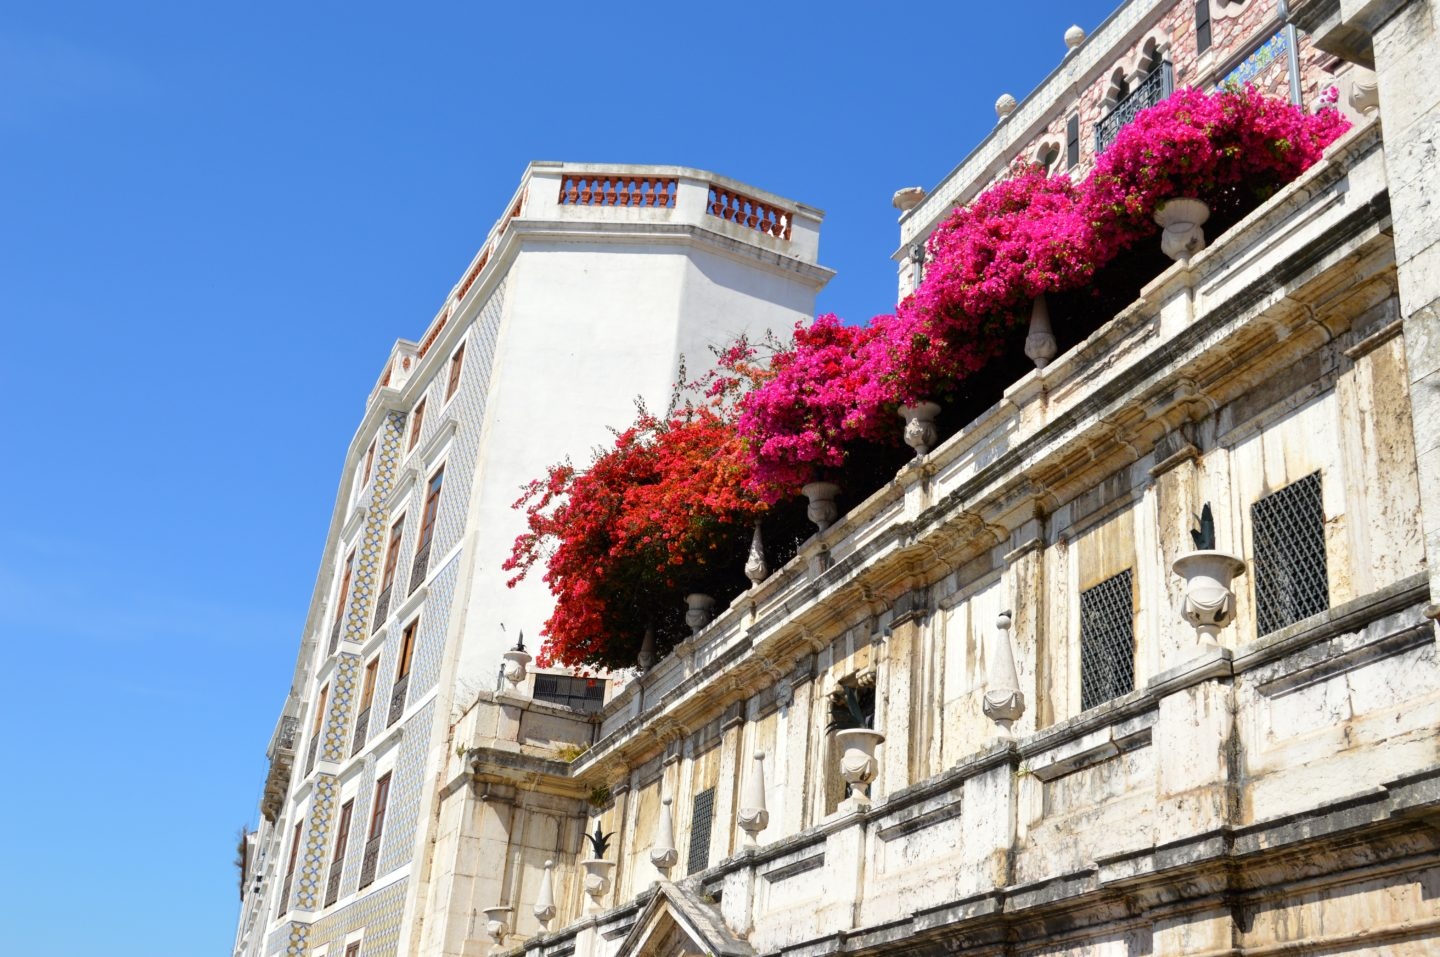 Beautiful and colorful architecture in Lisbon Portugal full of bright pink florals